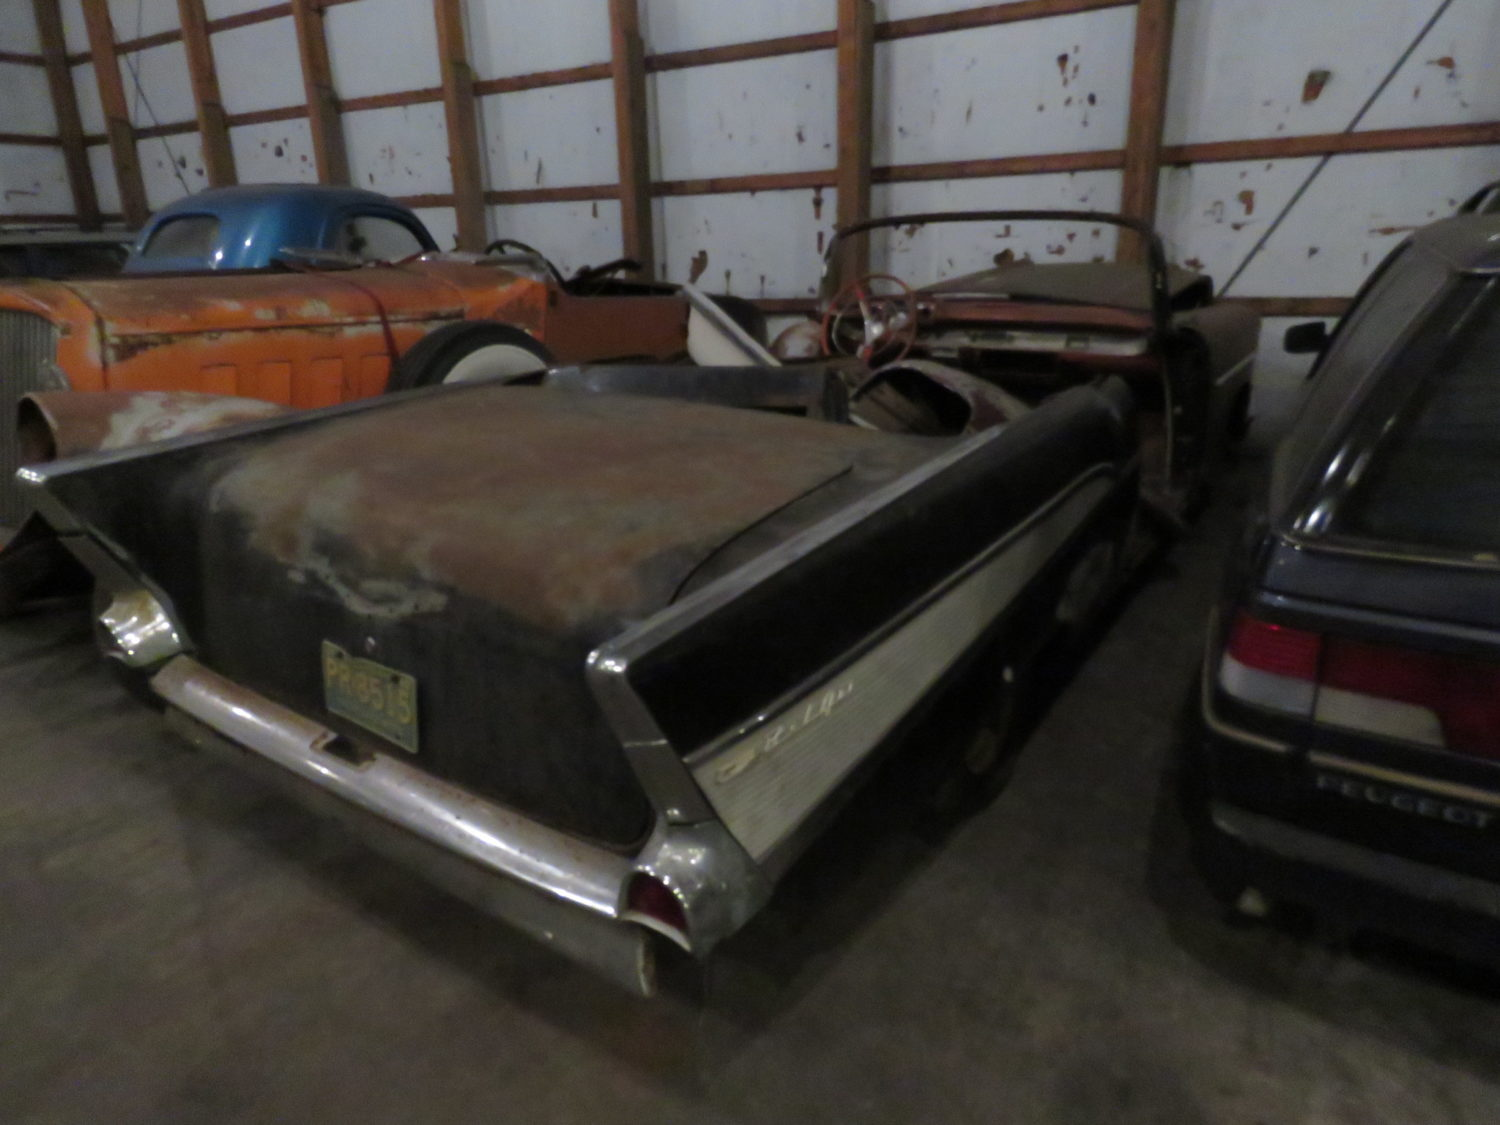 Amazing Vintage Motorcycles, Race Cars, Collector Cars & Parts! The JAB Collection - image 9